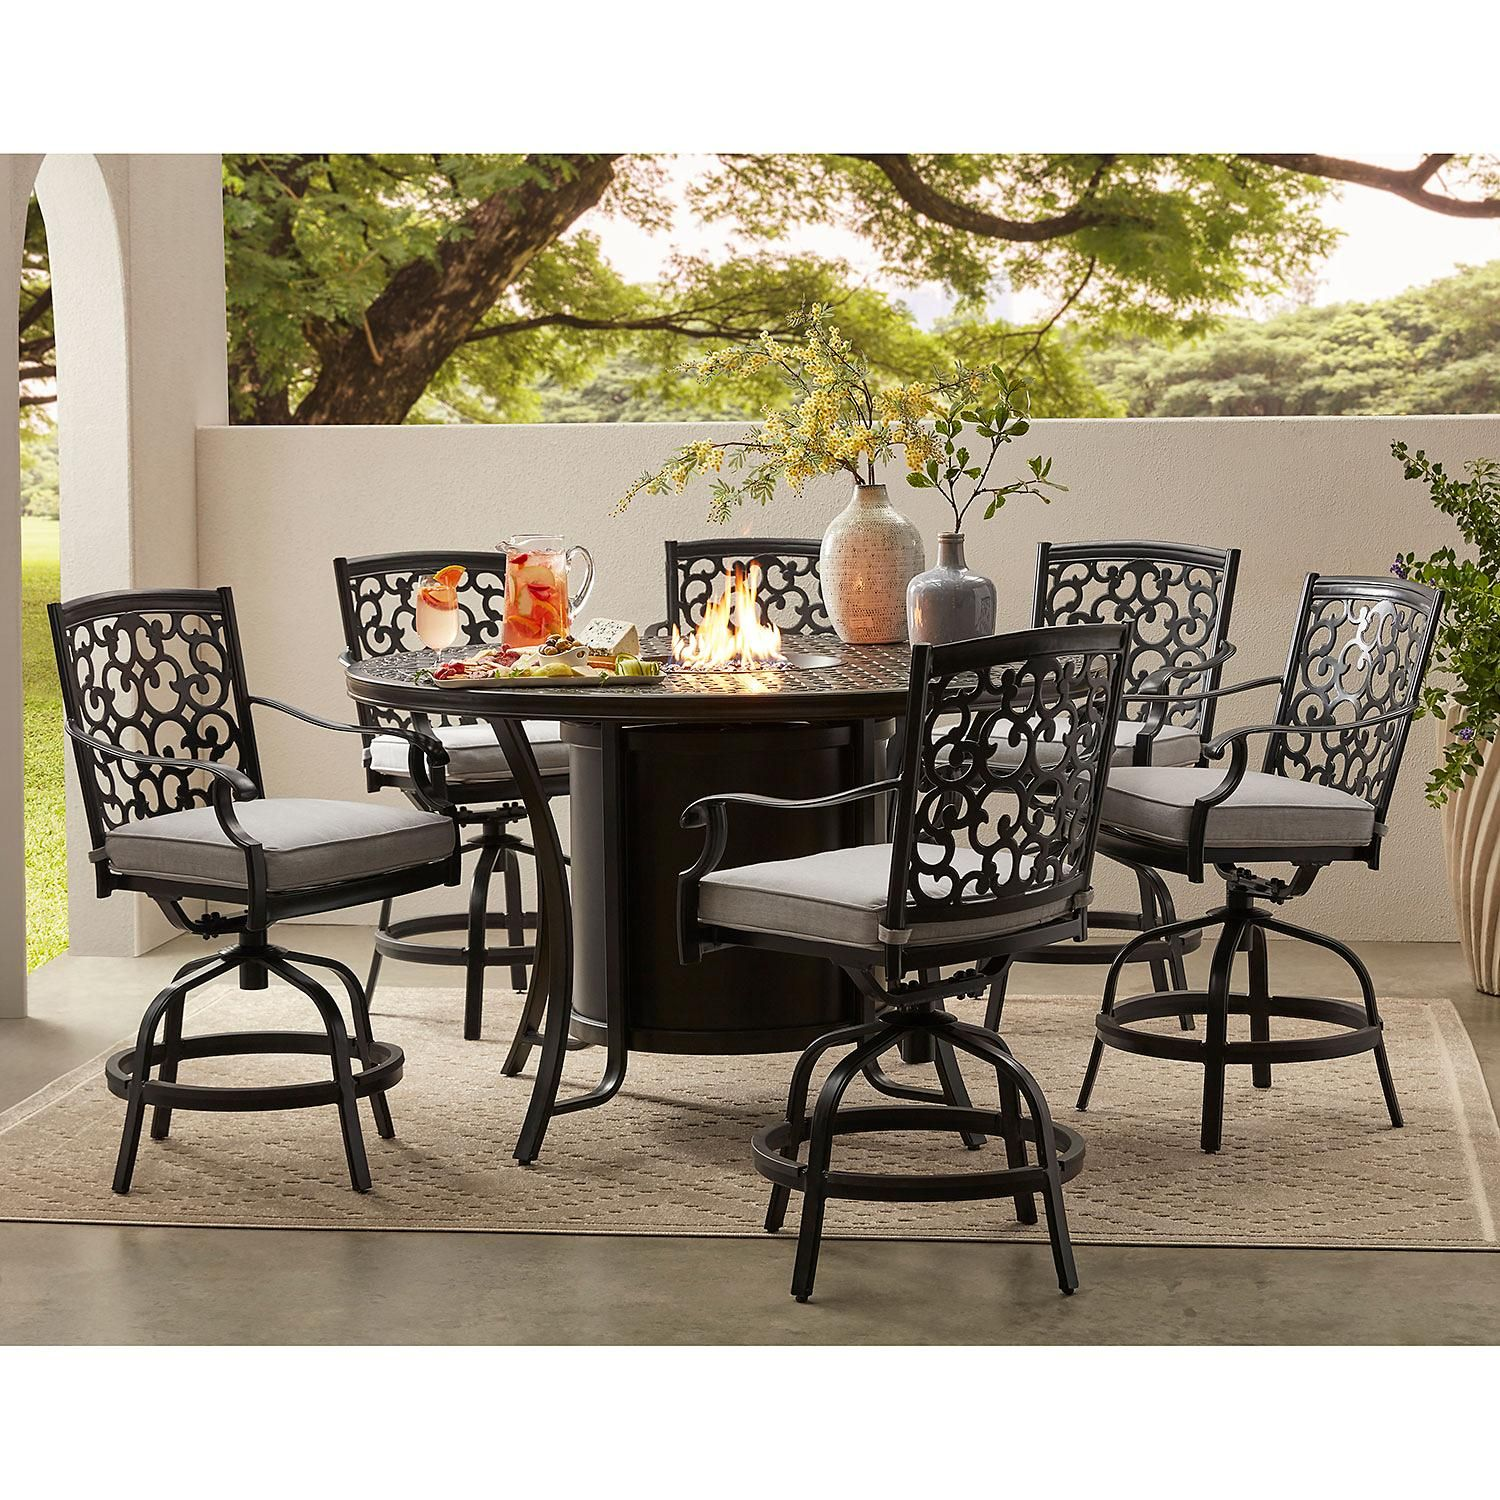 Member S Mark Agio Hastings 7 Piece High Dining With Fire Pit And